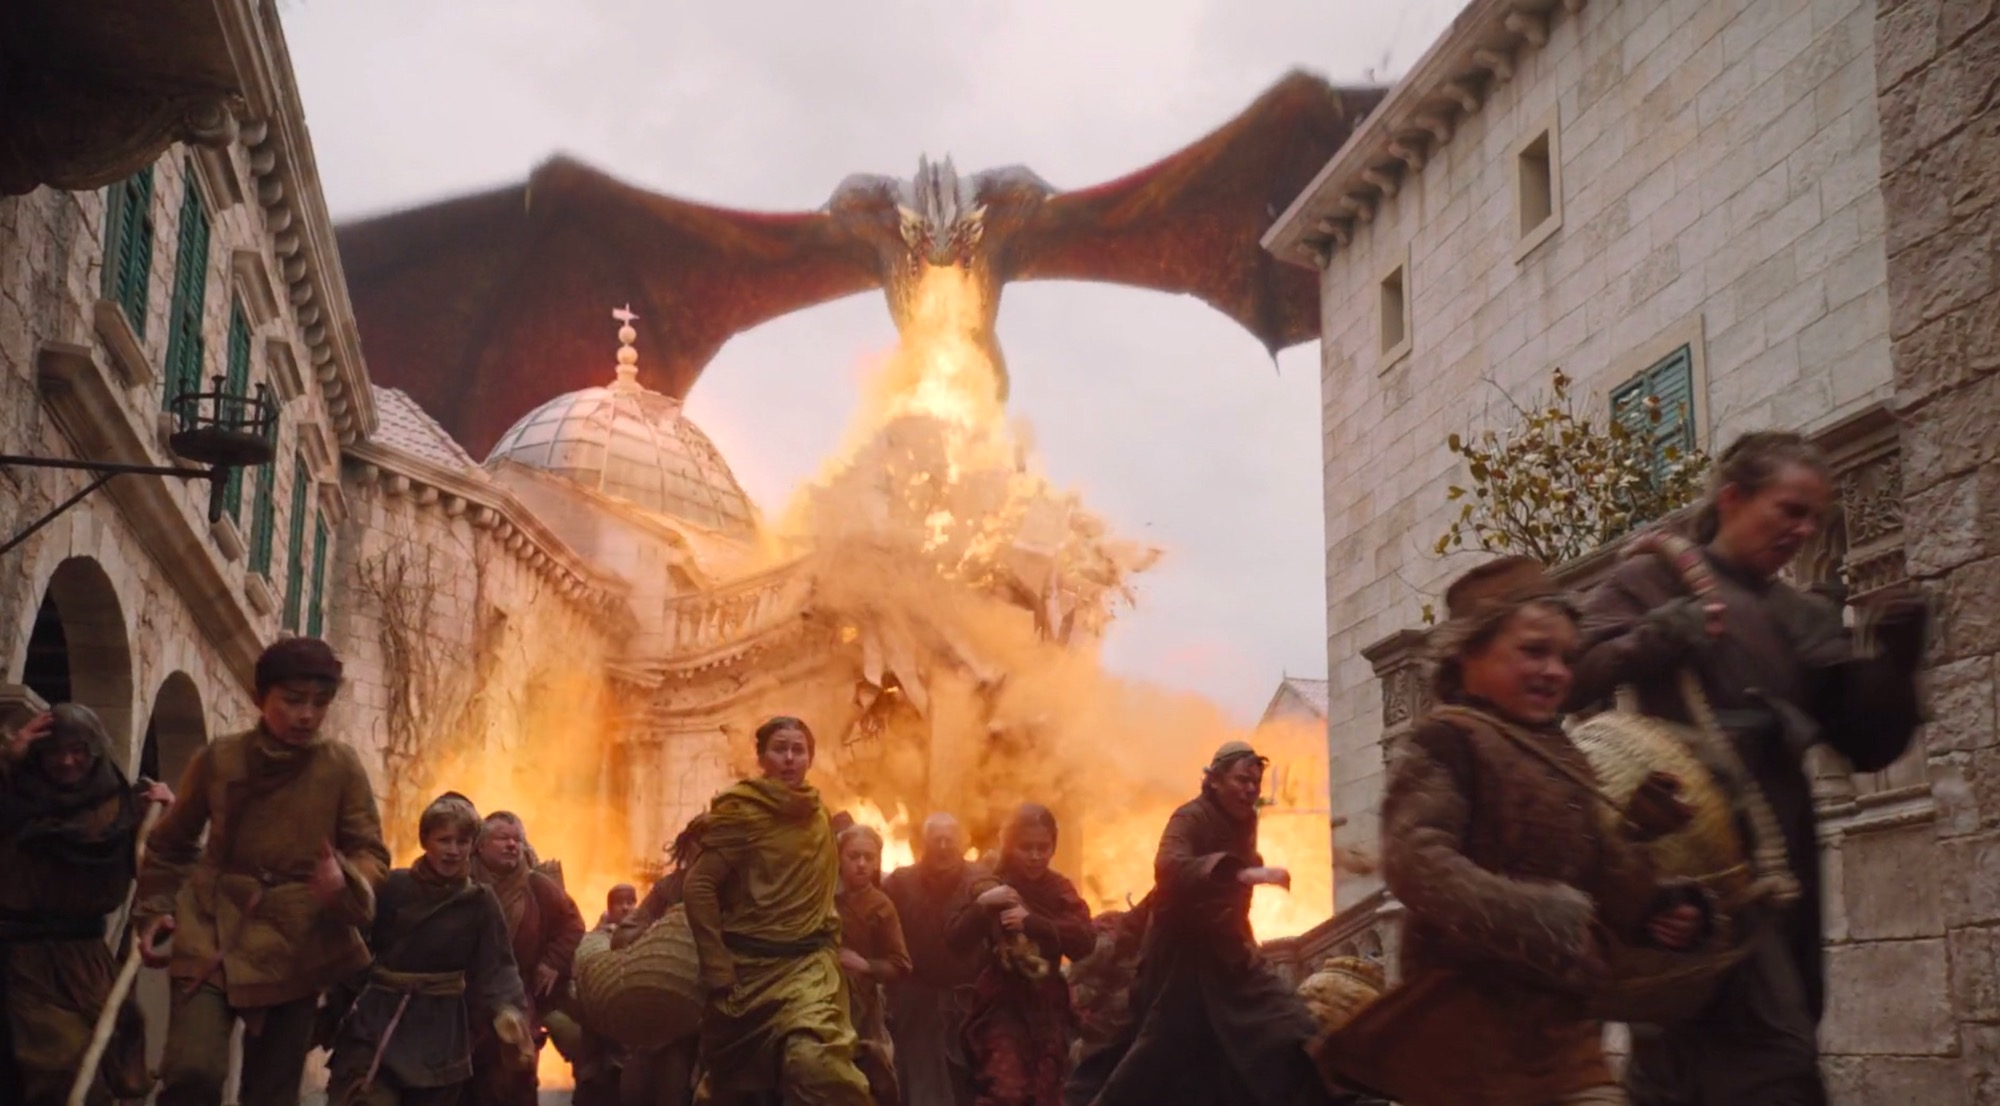 Drogon in GoT 8x05 - The Bells